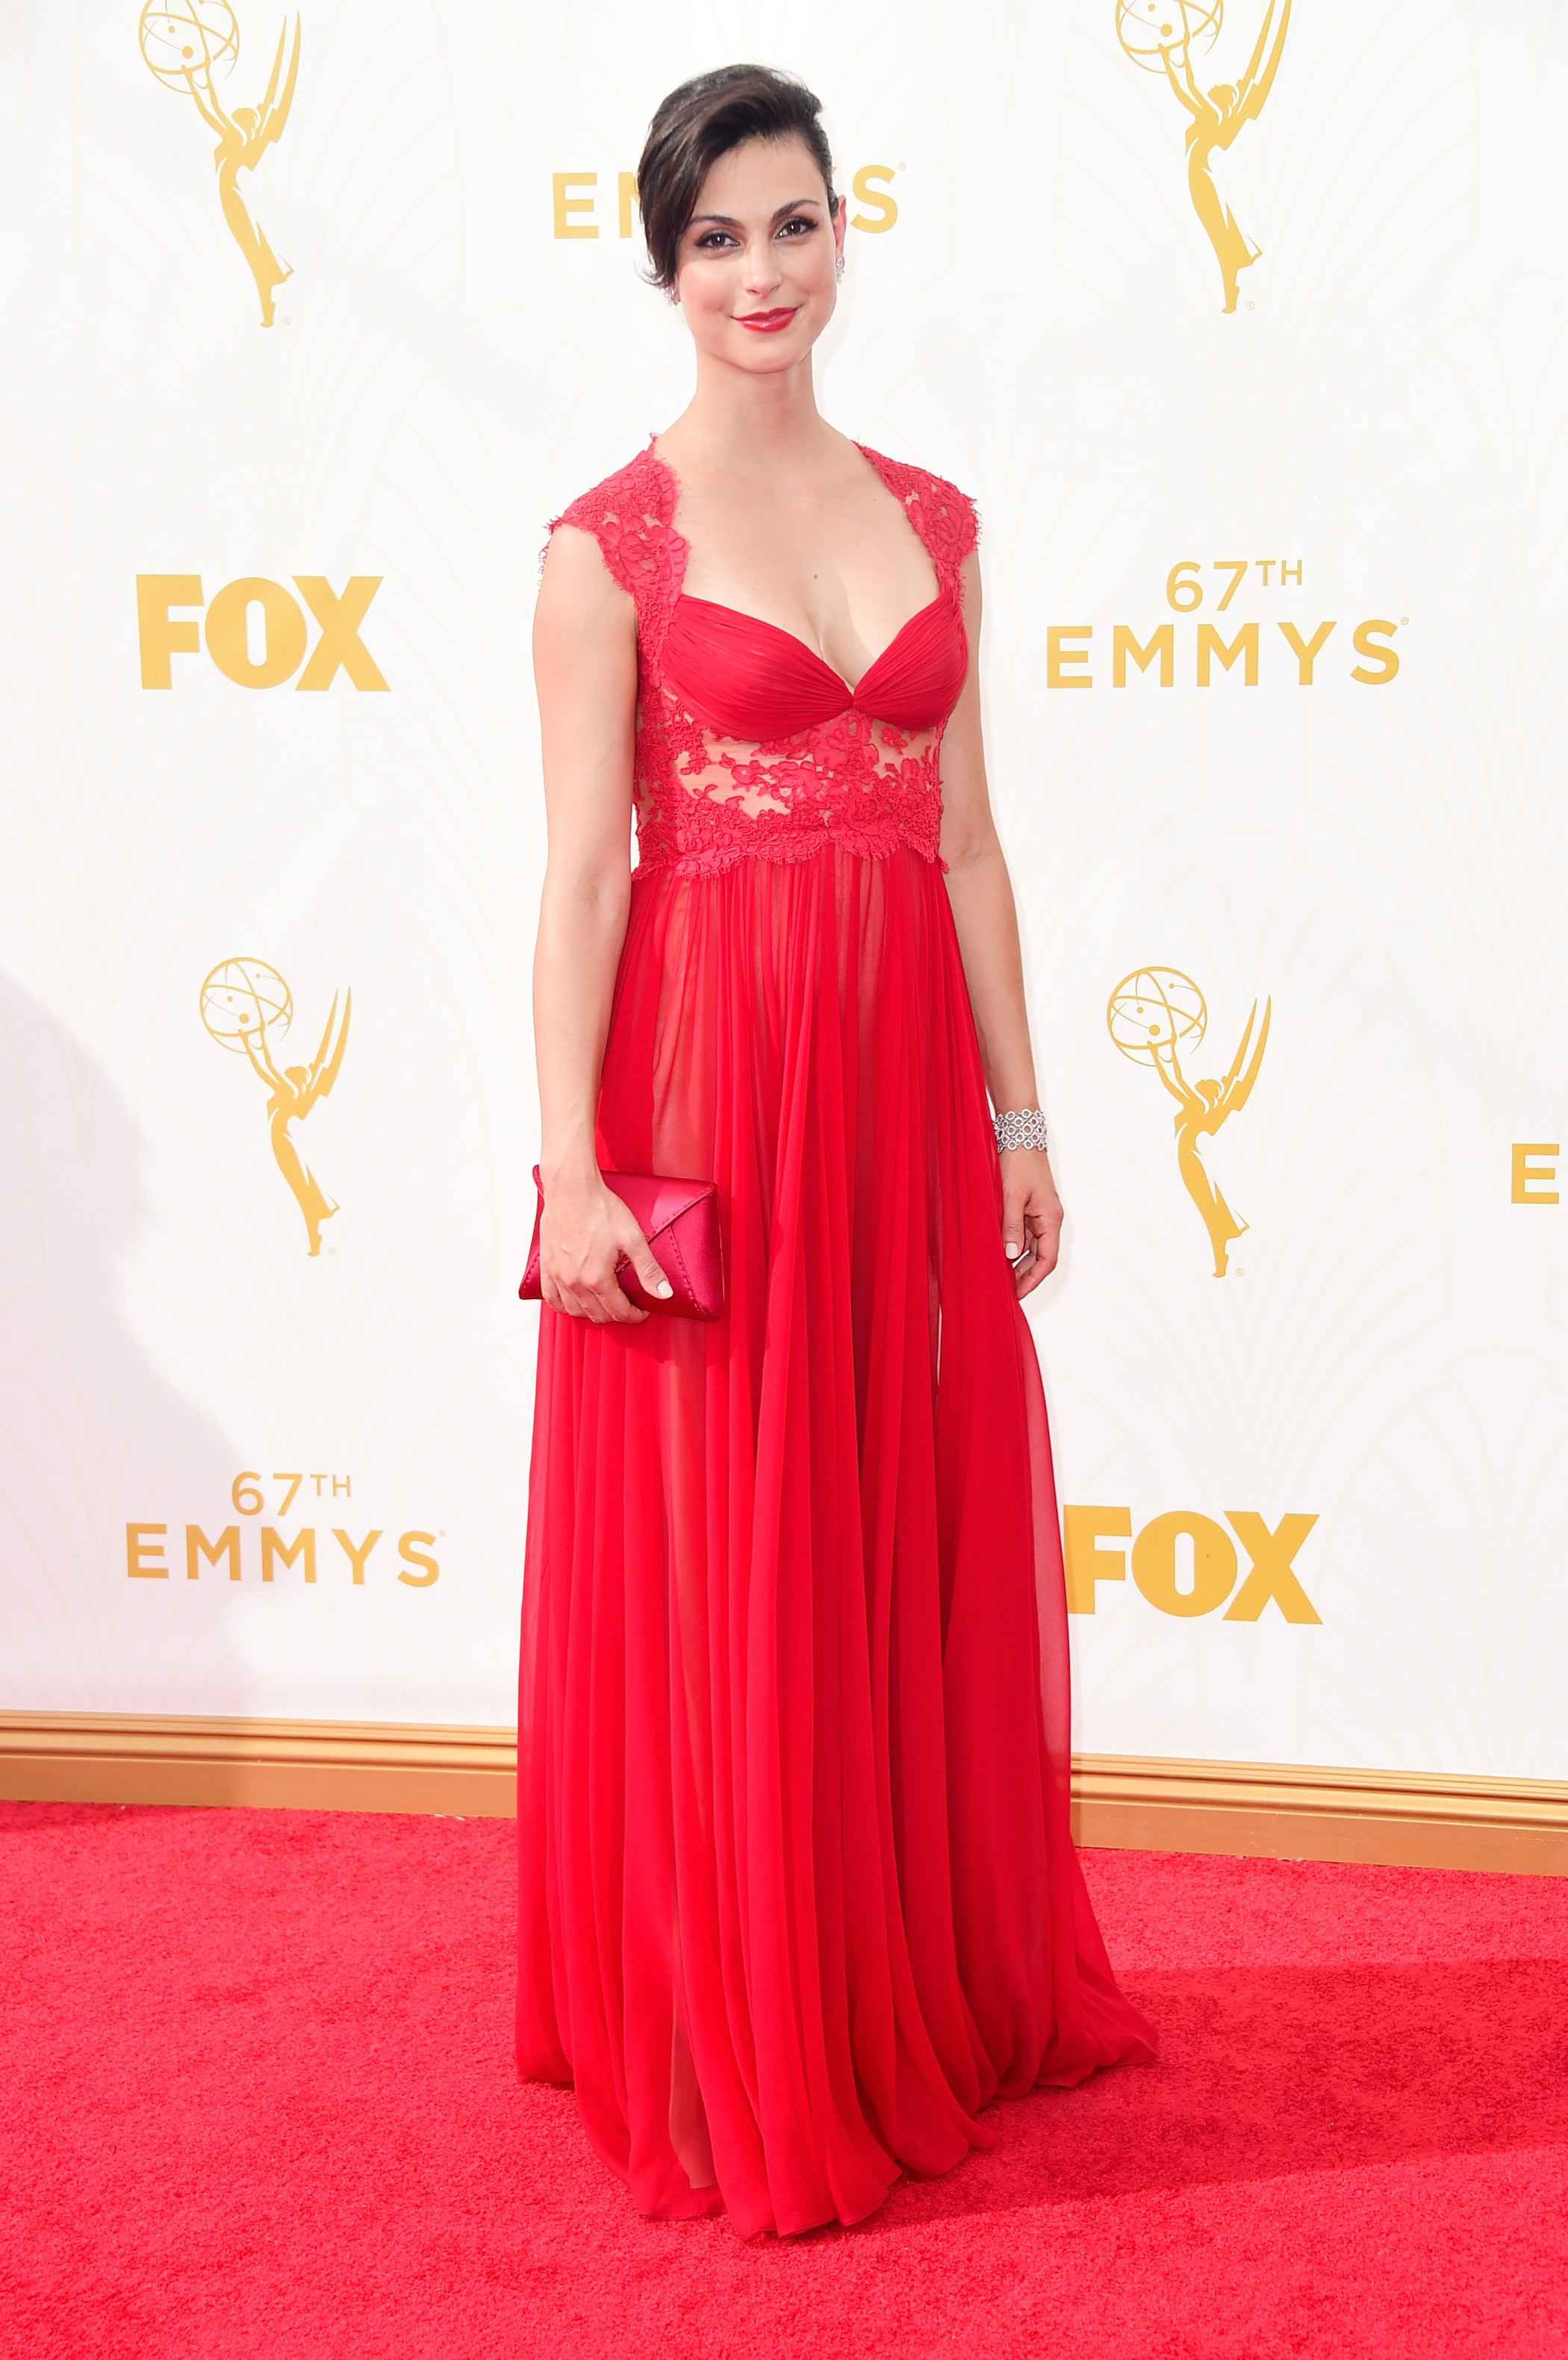 Morena Baccarin at the 67th Emmy Award on Sept. 20, 2015 in Los Angeles.